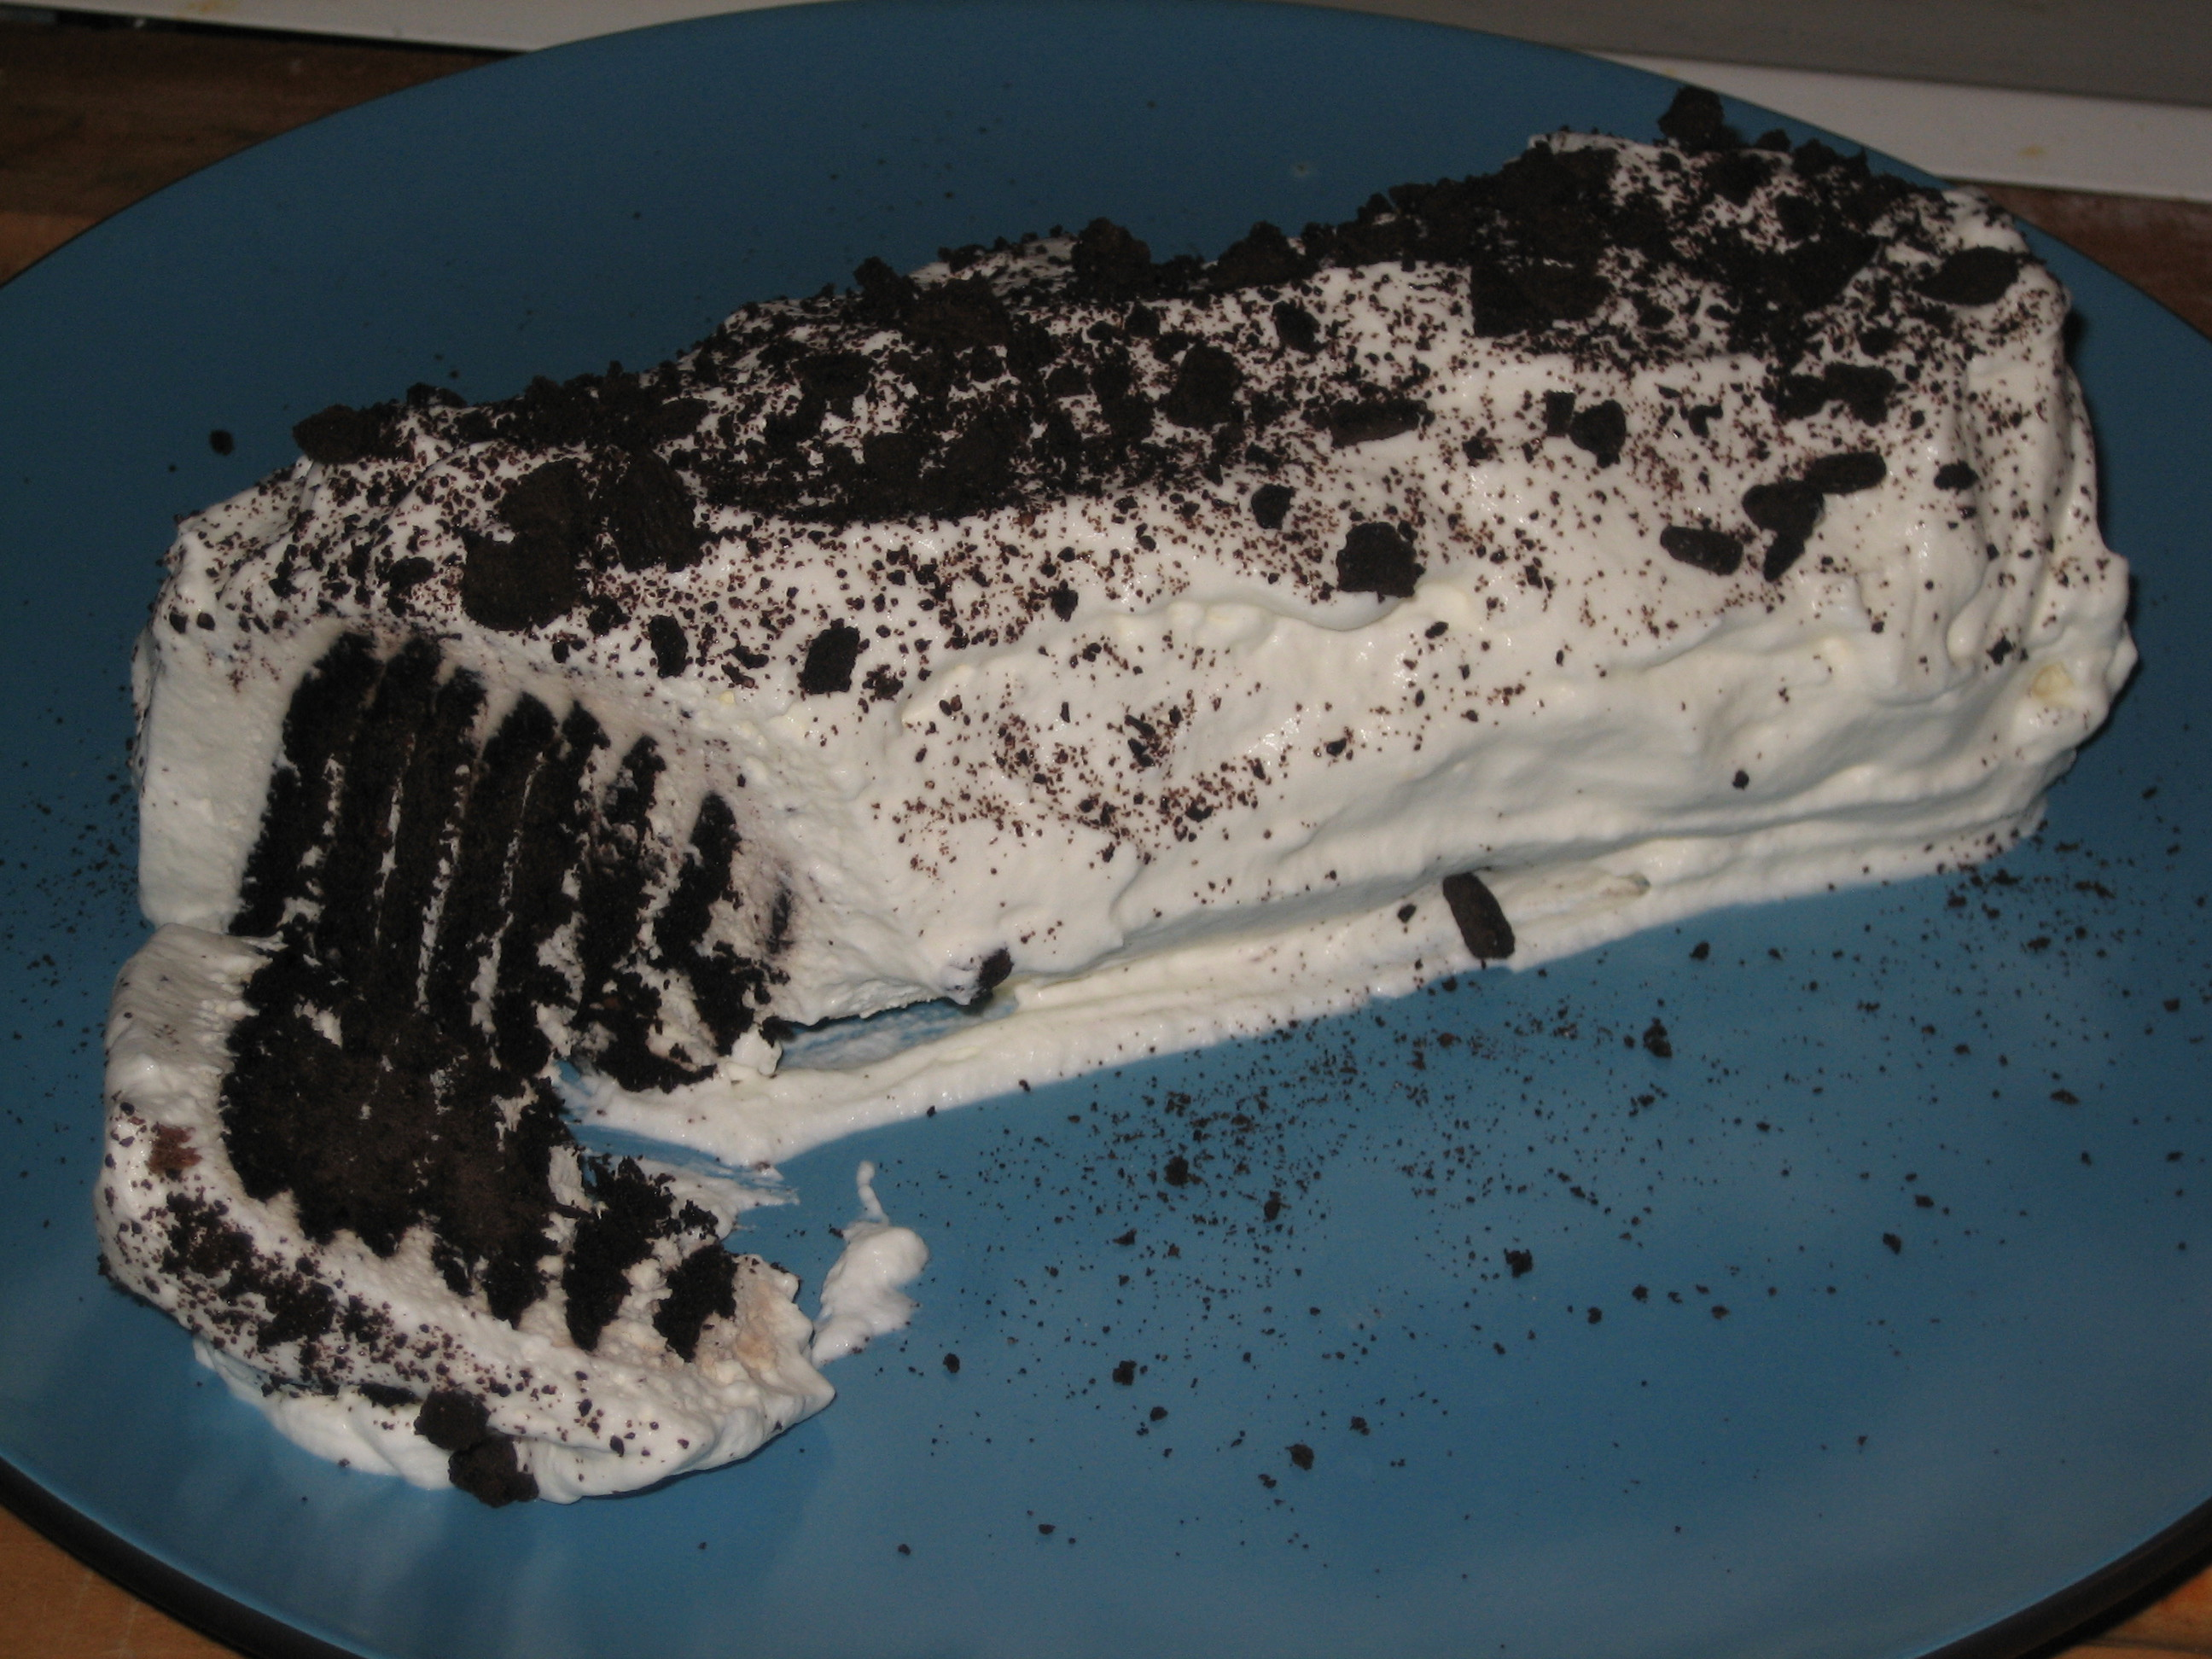 http://maneatfood.files.wordpress.com/2008/09/icebox-cake-cut.jpg